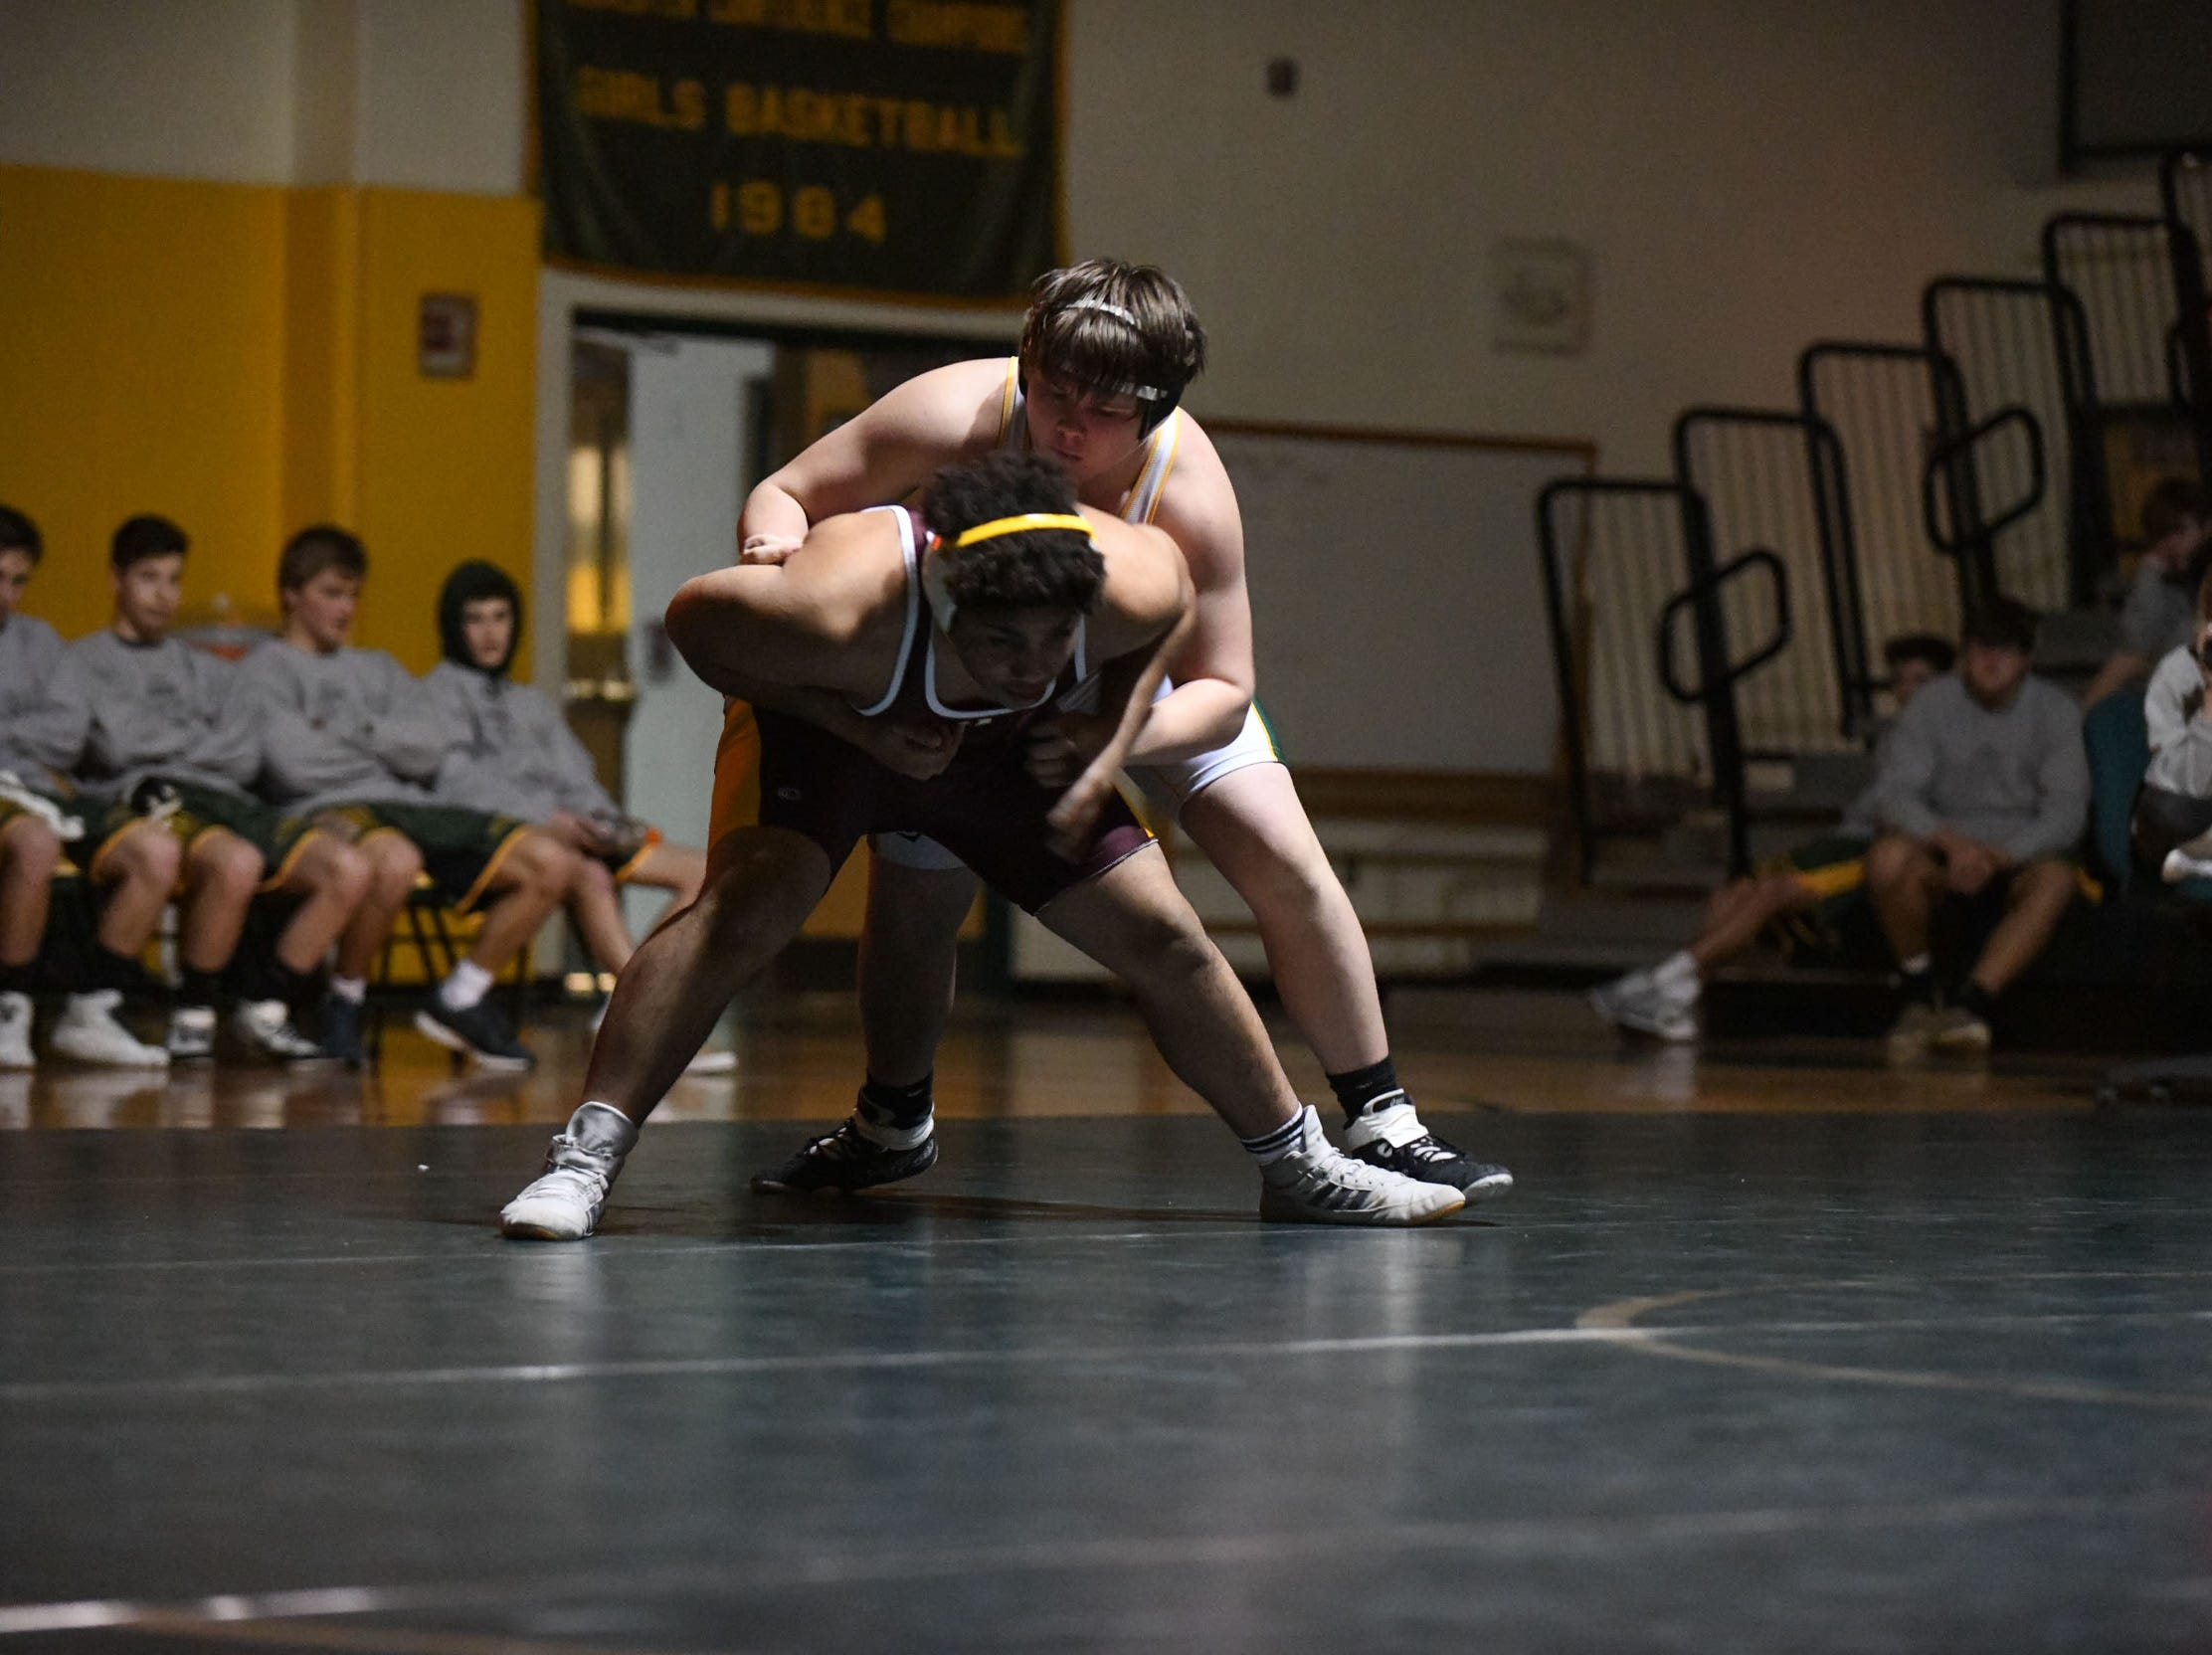 Indian River's TJ Burke battled Milford's Anthony Diaz the 220lb match on Thursday, Jan 17, 2019 in Dagsboro, Del. Milford won the match 53-15.